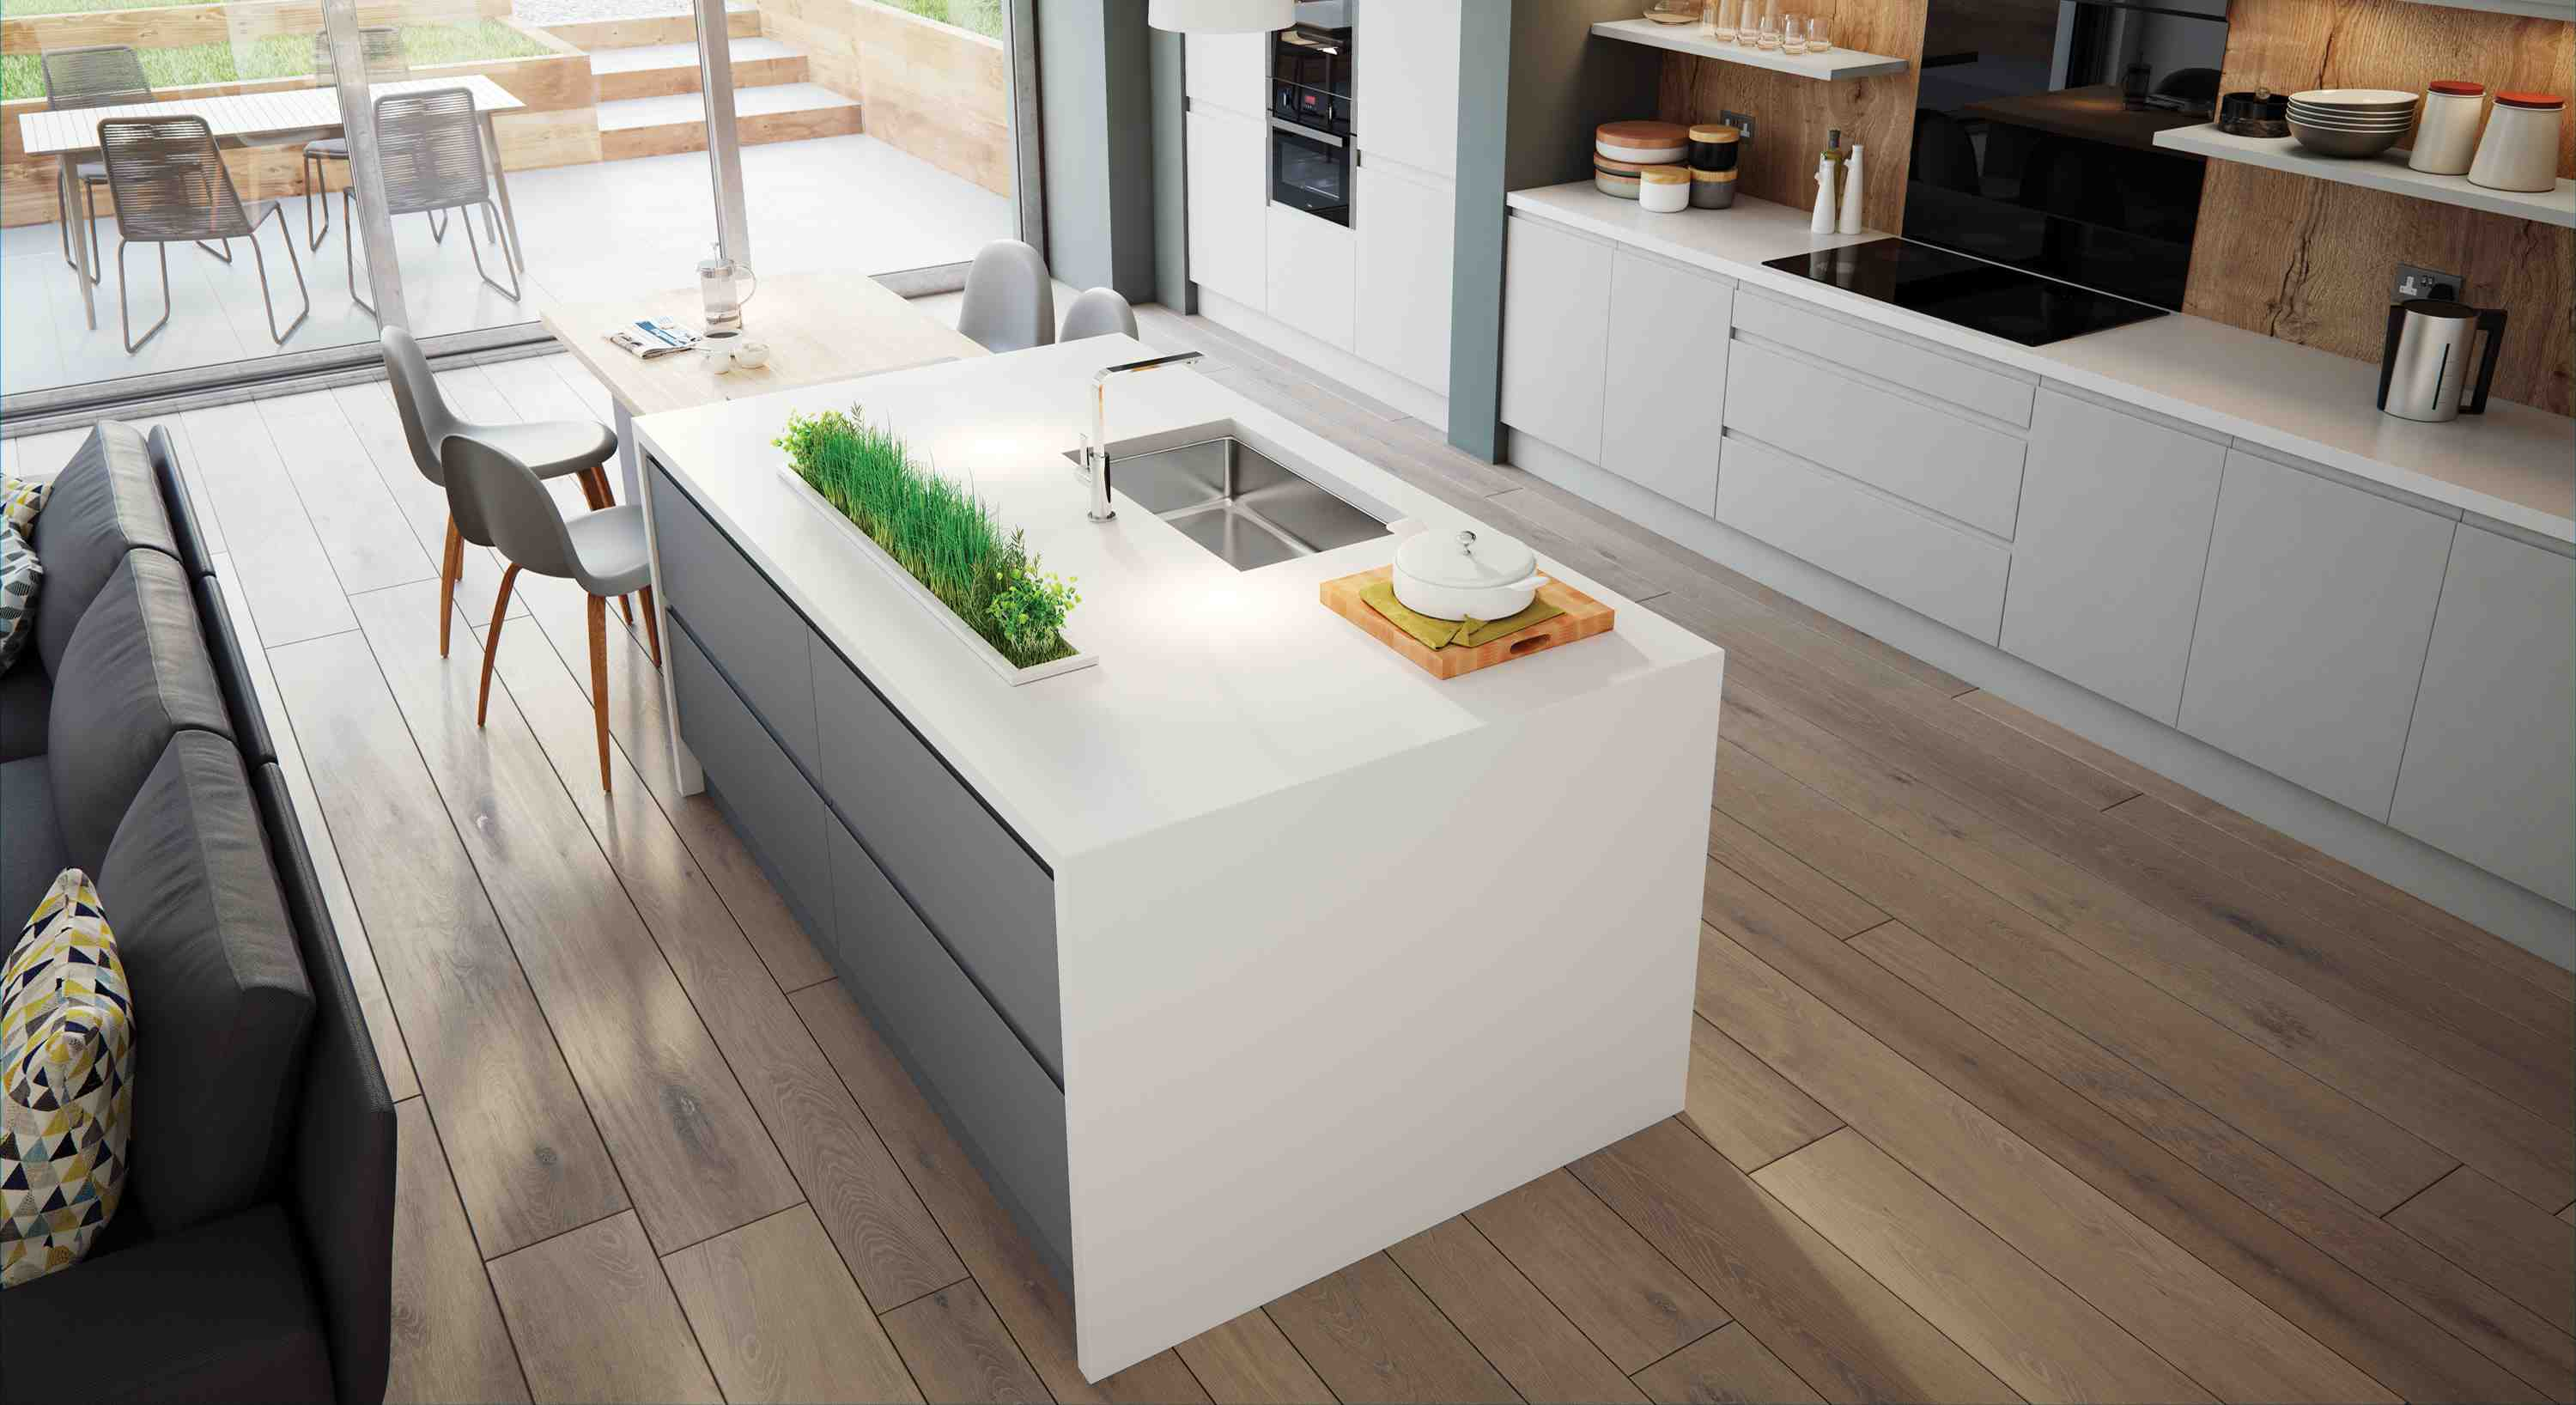 form with function biult in,arena is the stylish, yet practical choise for your kitchen deisgn. with its integrated handle and embossed real wood effect finish.